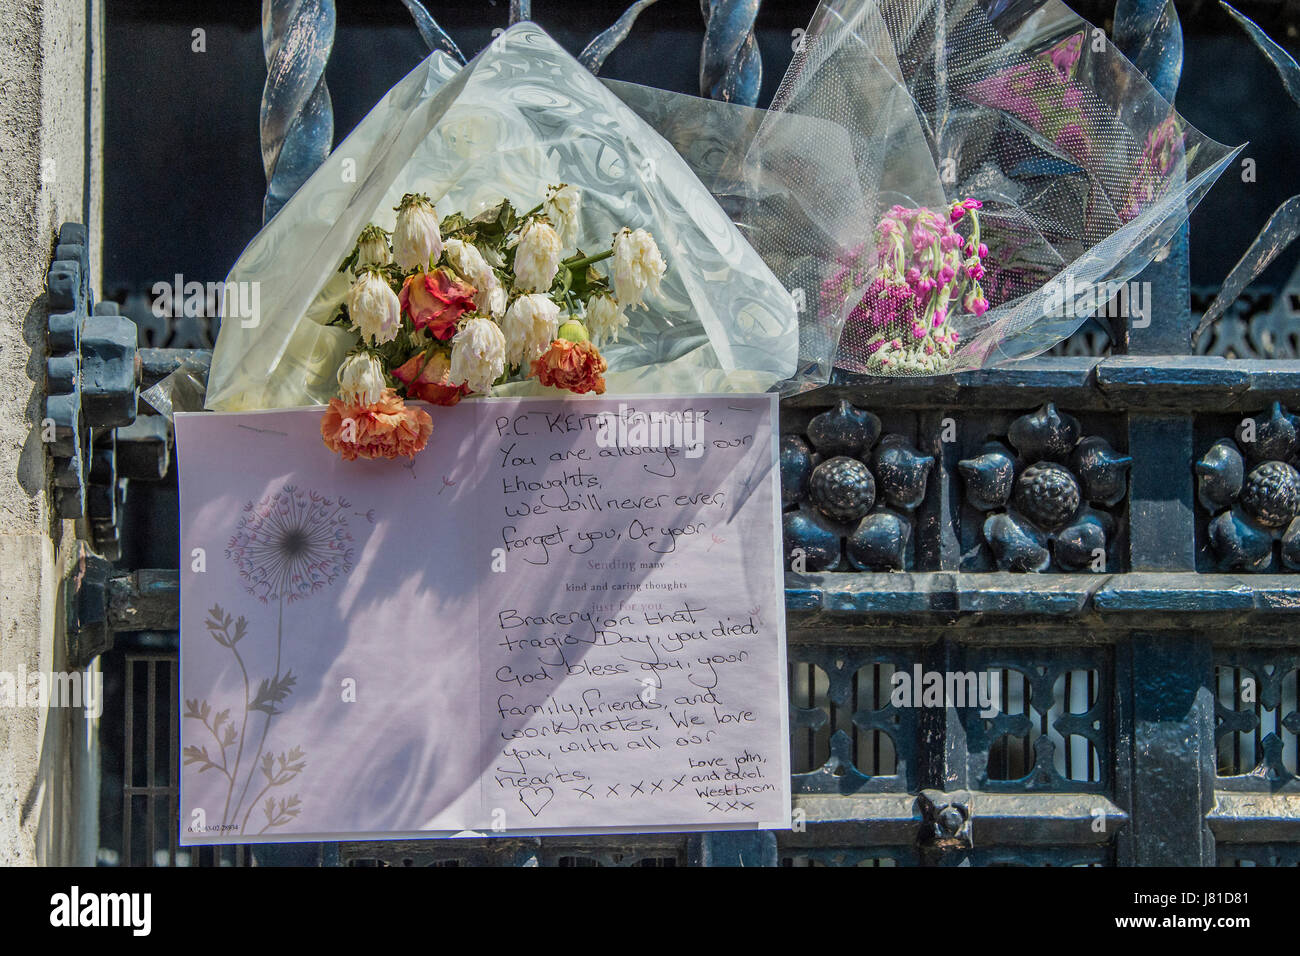 Whitehall, London, UK. 25th May, 2017. A memorial of flowers for PC Keith Palmer remains attatched to the railings - Stock Image